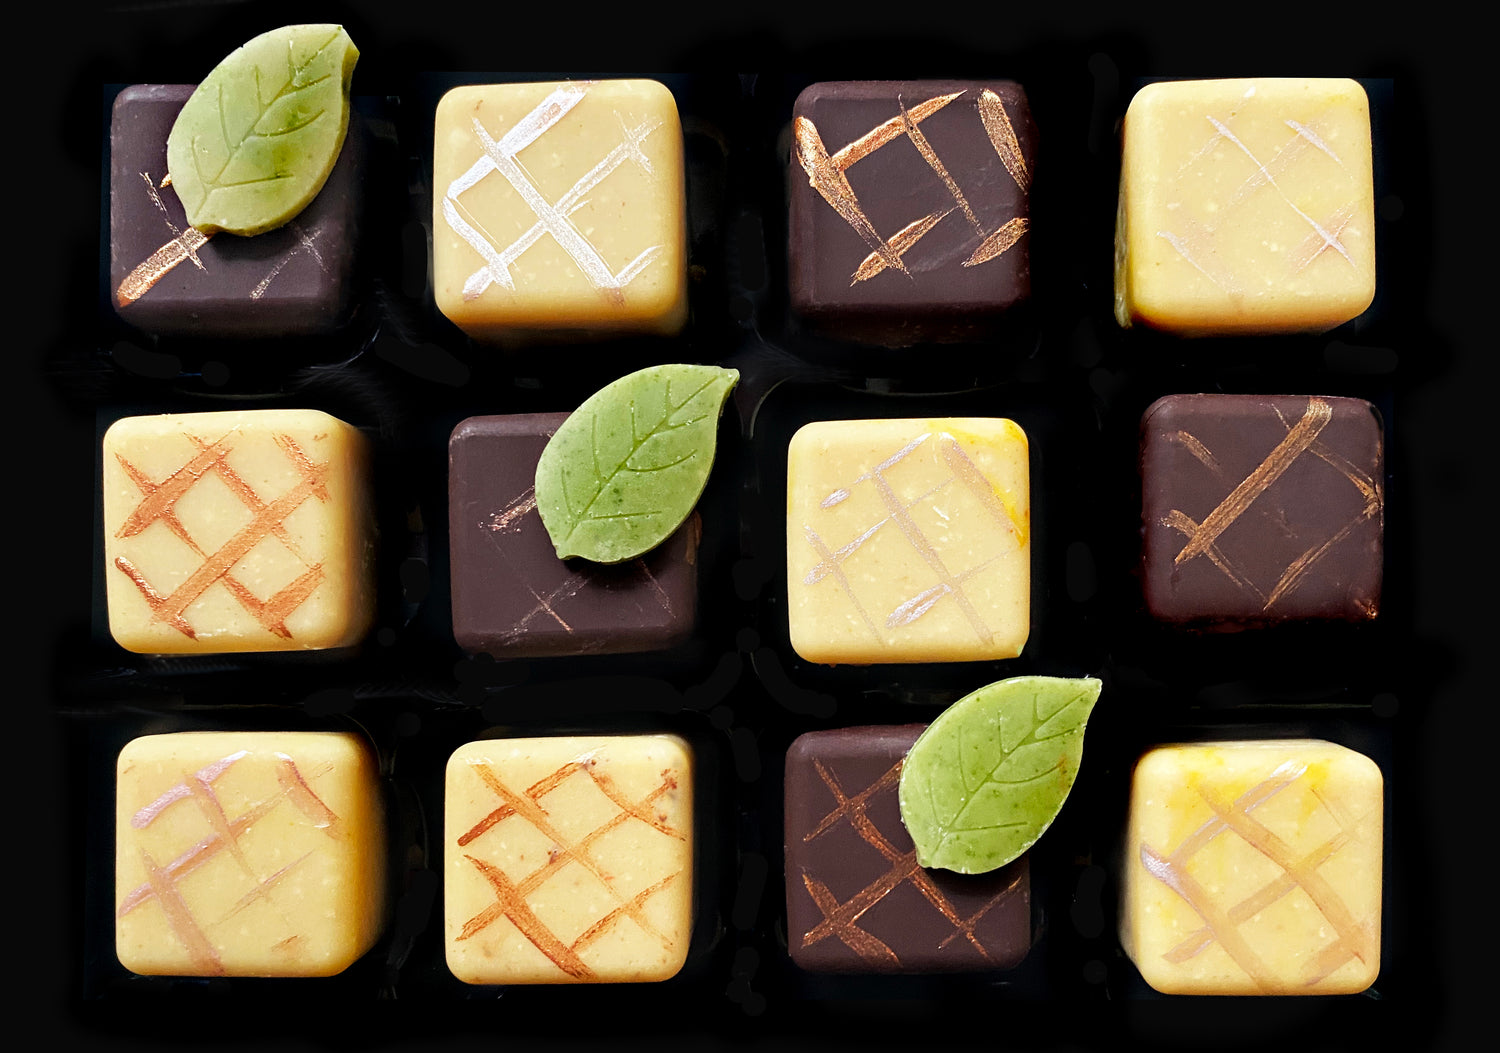 NEW!! Nono Cocoa - Summer Pineapple & Coconut  - Vegan Chocolate